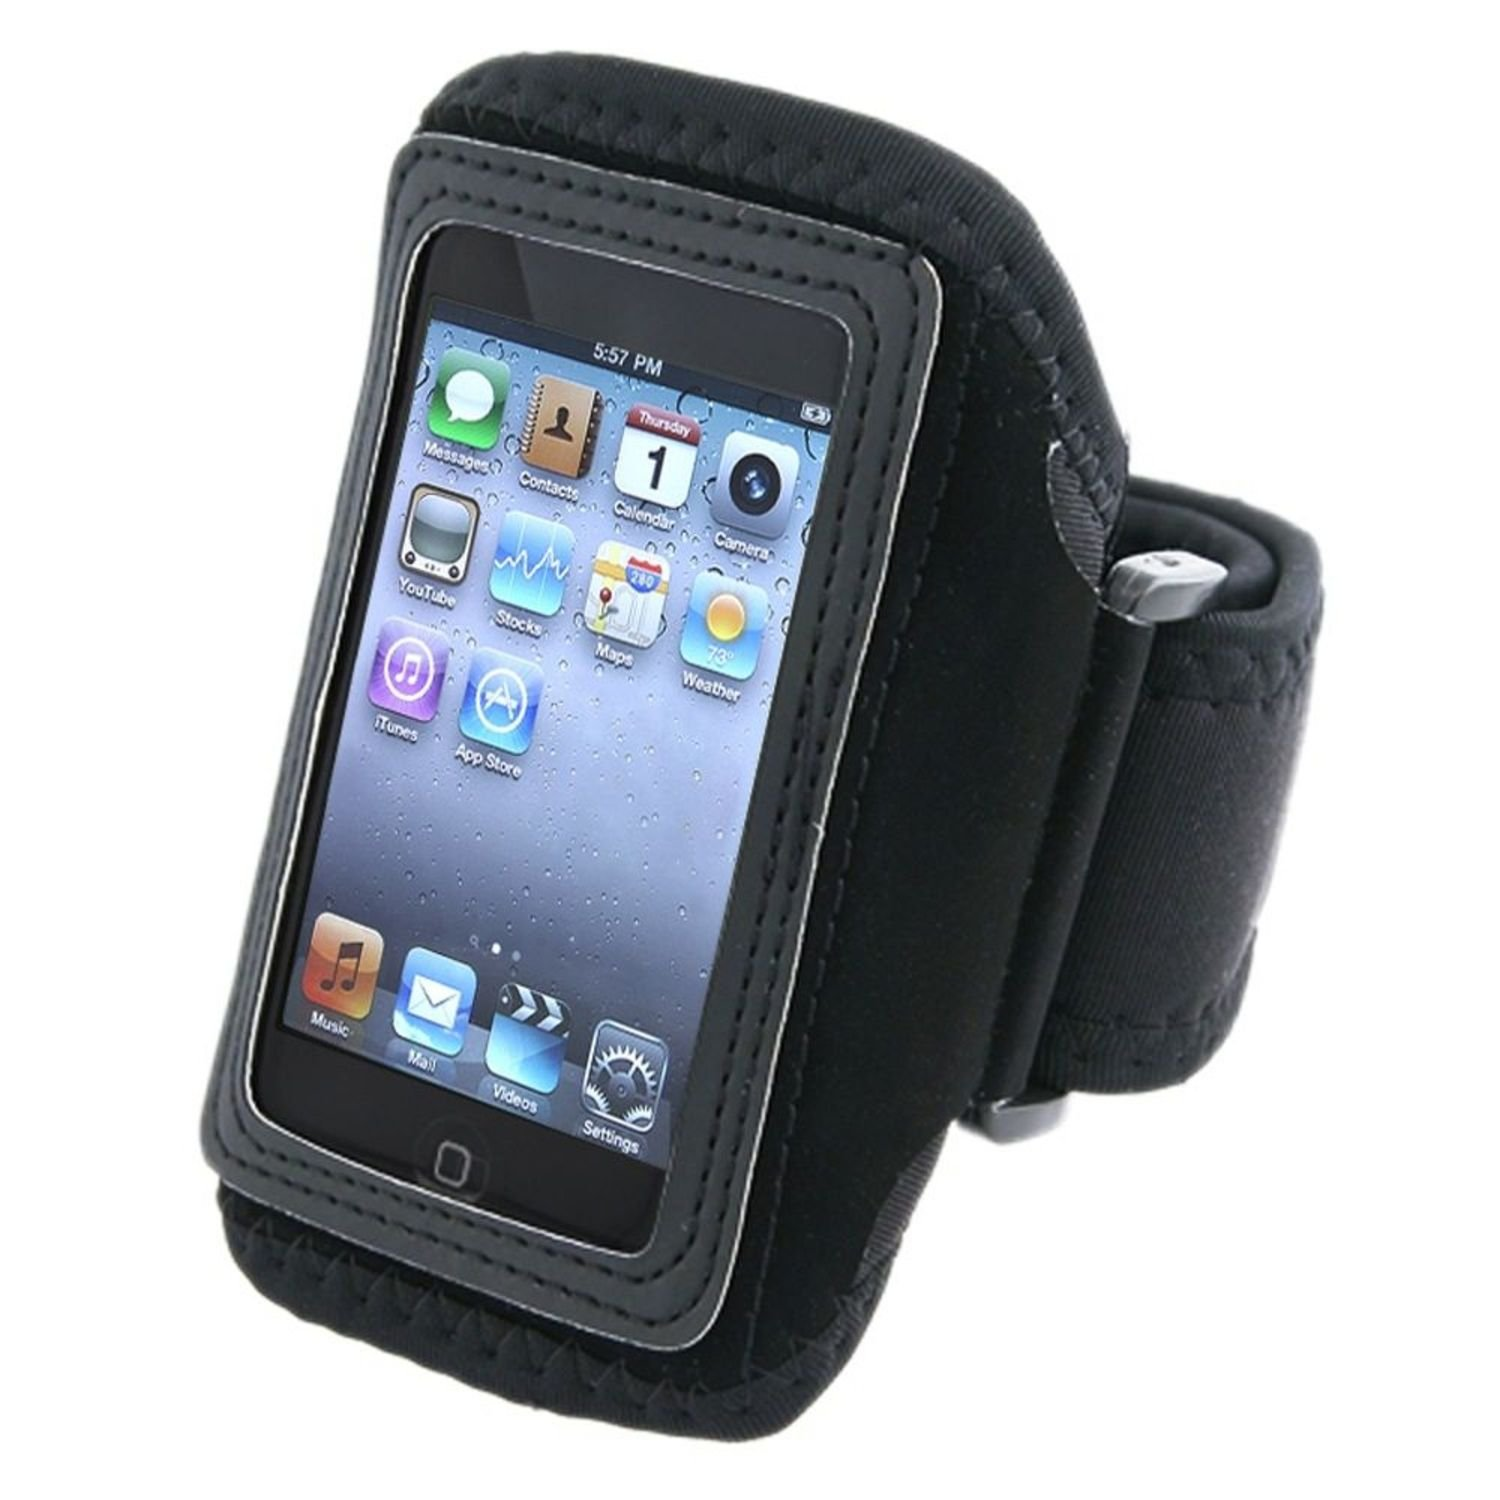 eForCity Sporty Armband Arm Band for iPod touch 2G/3G/4G ce emc lvd fcc 1g 2g 3g 5g ozone generator for cleaning vegetables hottest